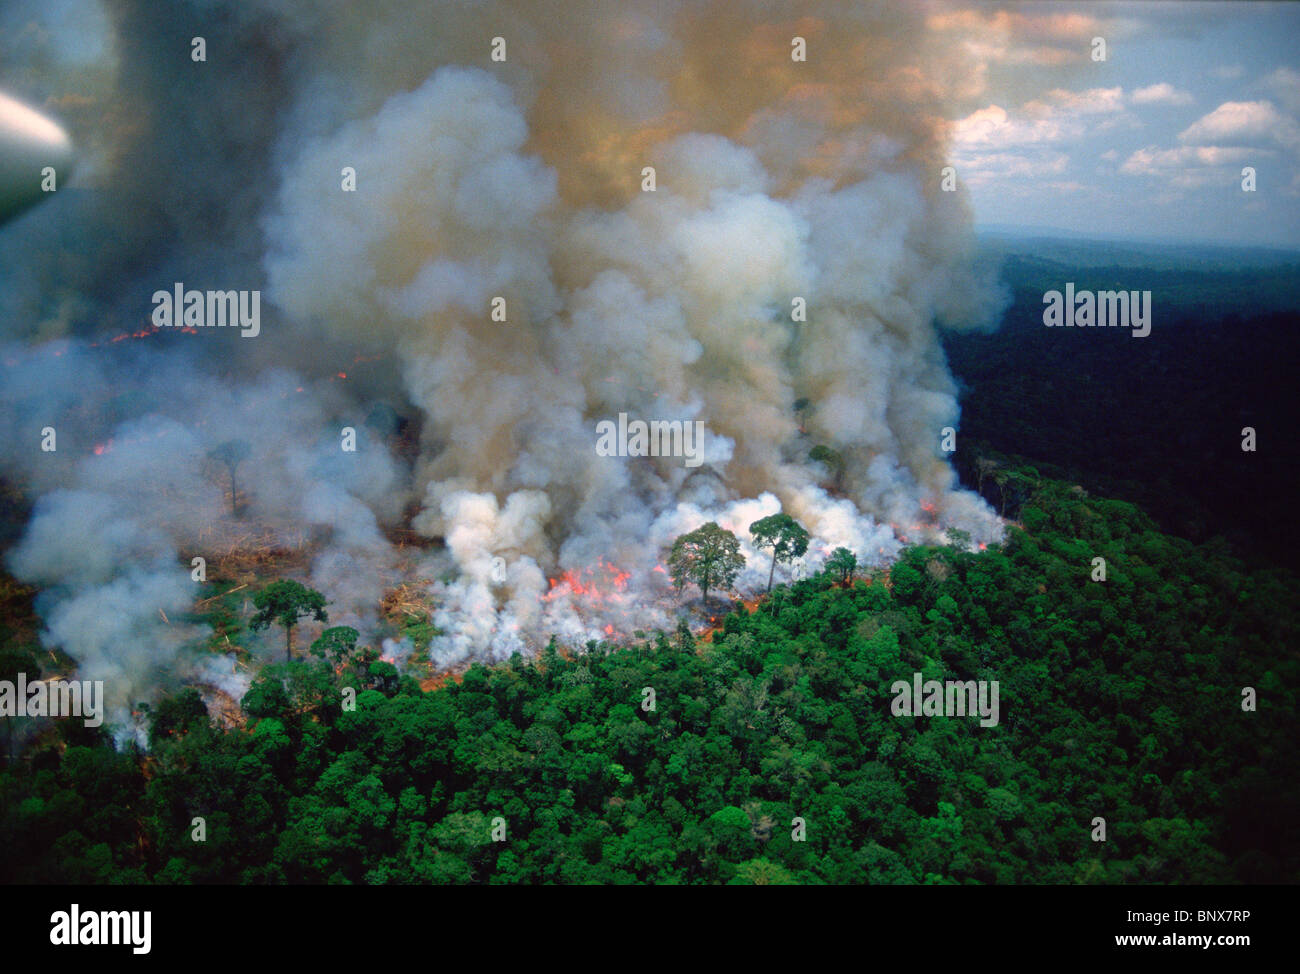 Amazon rain forest afire. Stock Photo